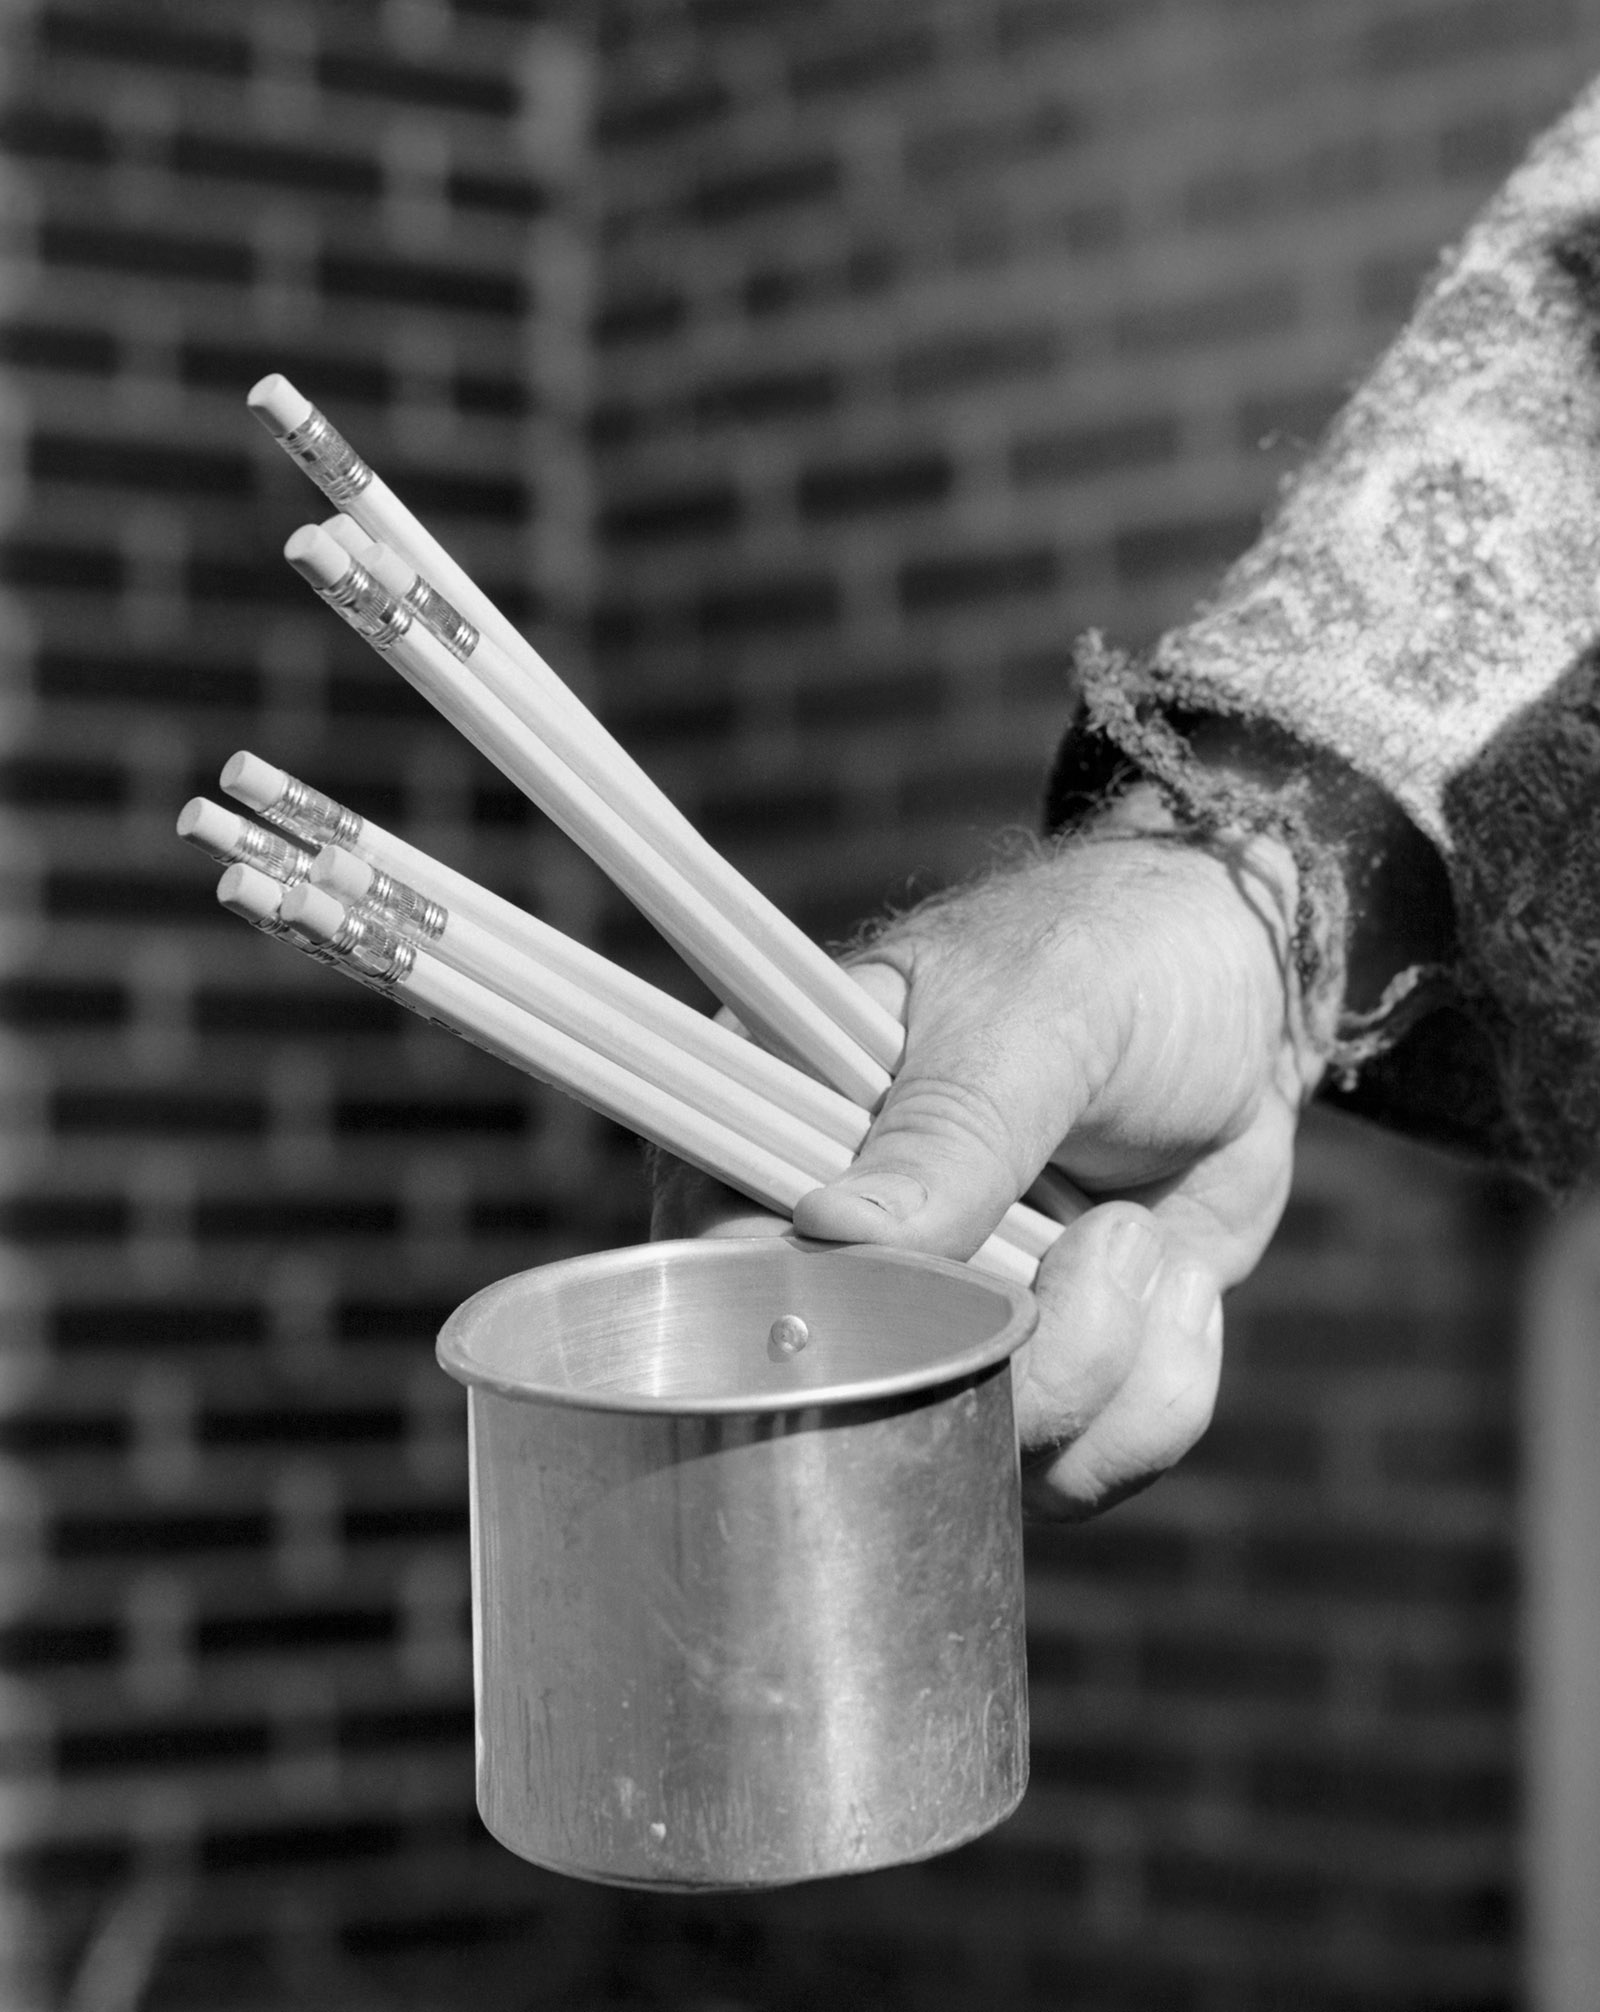 Close-up of a person's hand holding a mug and pencils